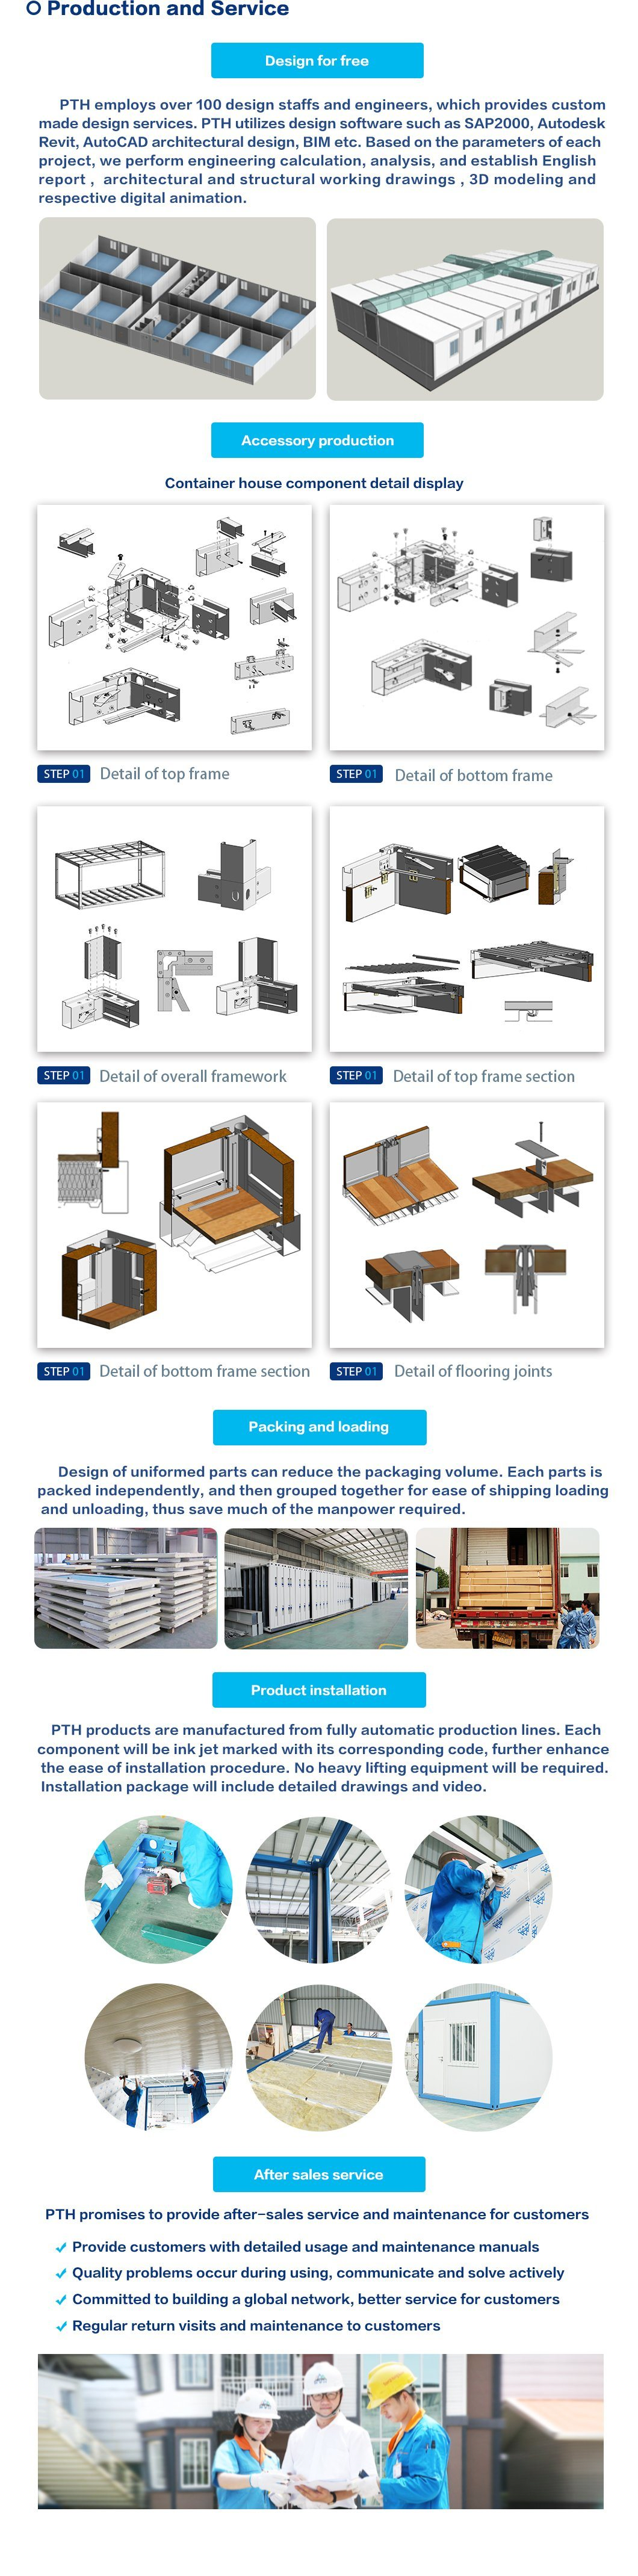 Smart Expo Modular 20 Feet Prefabricated Container House For Dormitory Security Wiring Diagram 1 Contact Us By Phone Email Linkedin Wechat 2 Drawing And Quotation Tell What You Want Our Sales Man Designer Give The Best